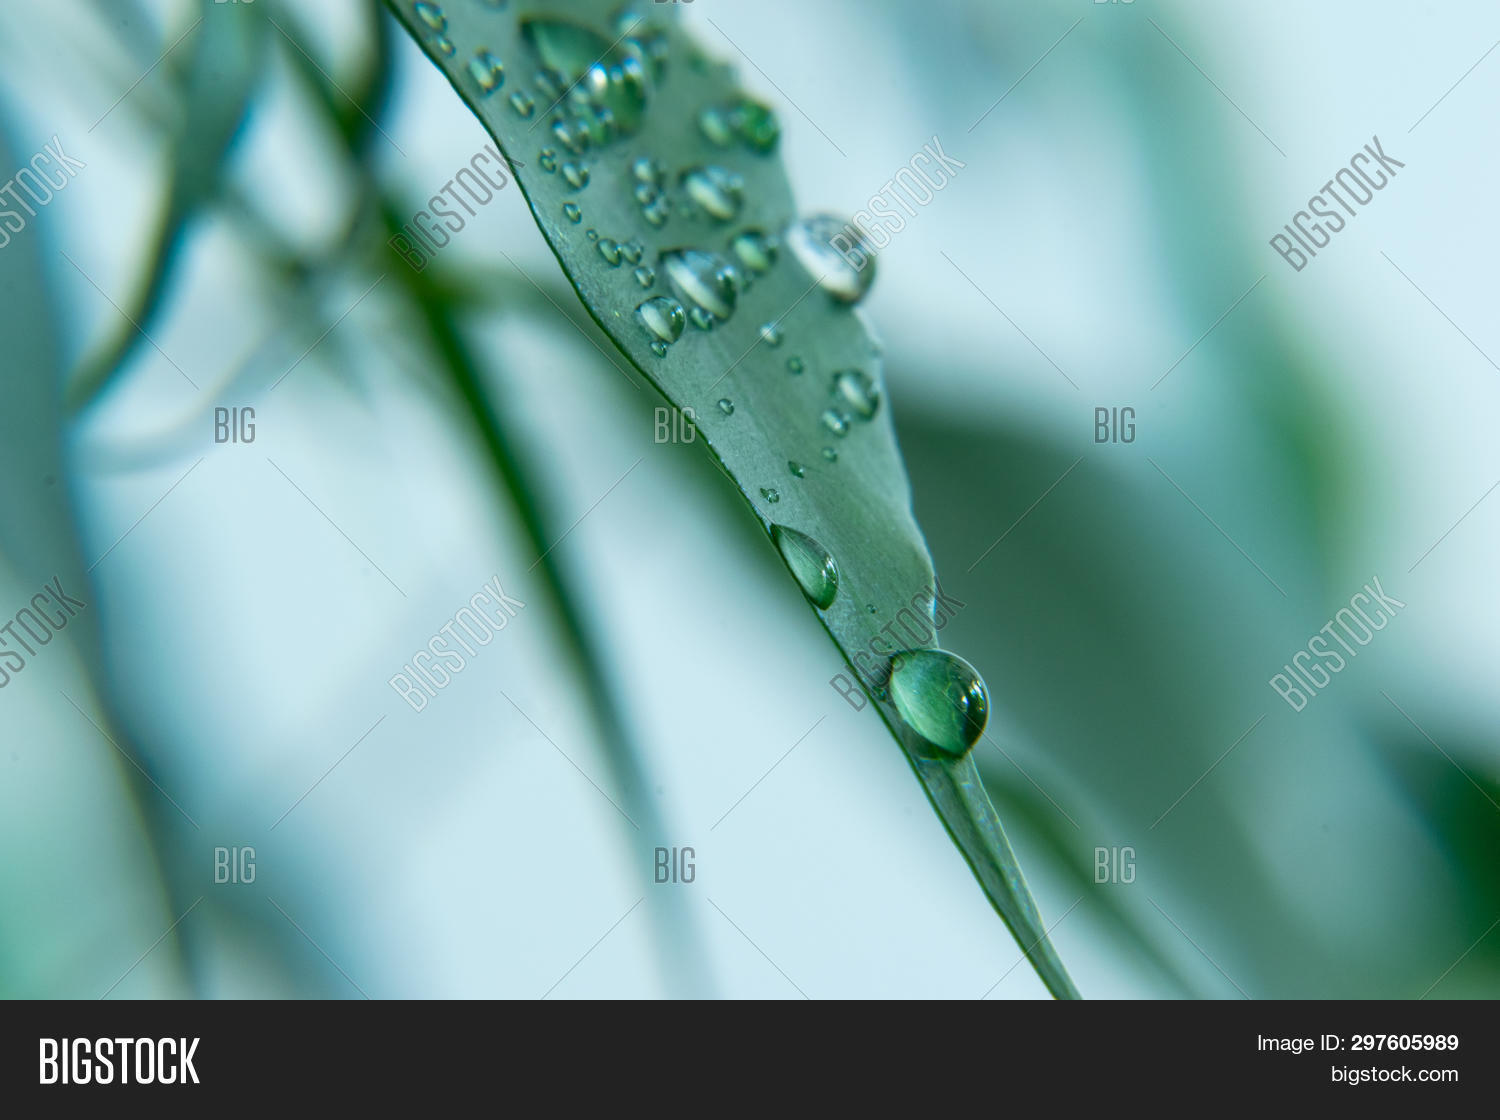 background,beauty,blurred,branches,close-up,closeup,day,design,dreamlike,droplet,drops,ecosystem,environment,extreme,focus,foliage,forest,frame,green,growth,happiness,horizontal,leaves,like,lush,luxuriant,macro,meditating,morning,natural,nature,no,people,photography,plant,rain,rainforests,scenic,season,softness,summer,texture,tranquility,tree,tropical,tropics,vibrant,water,wet,zen